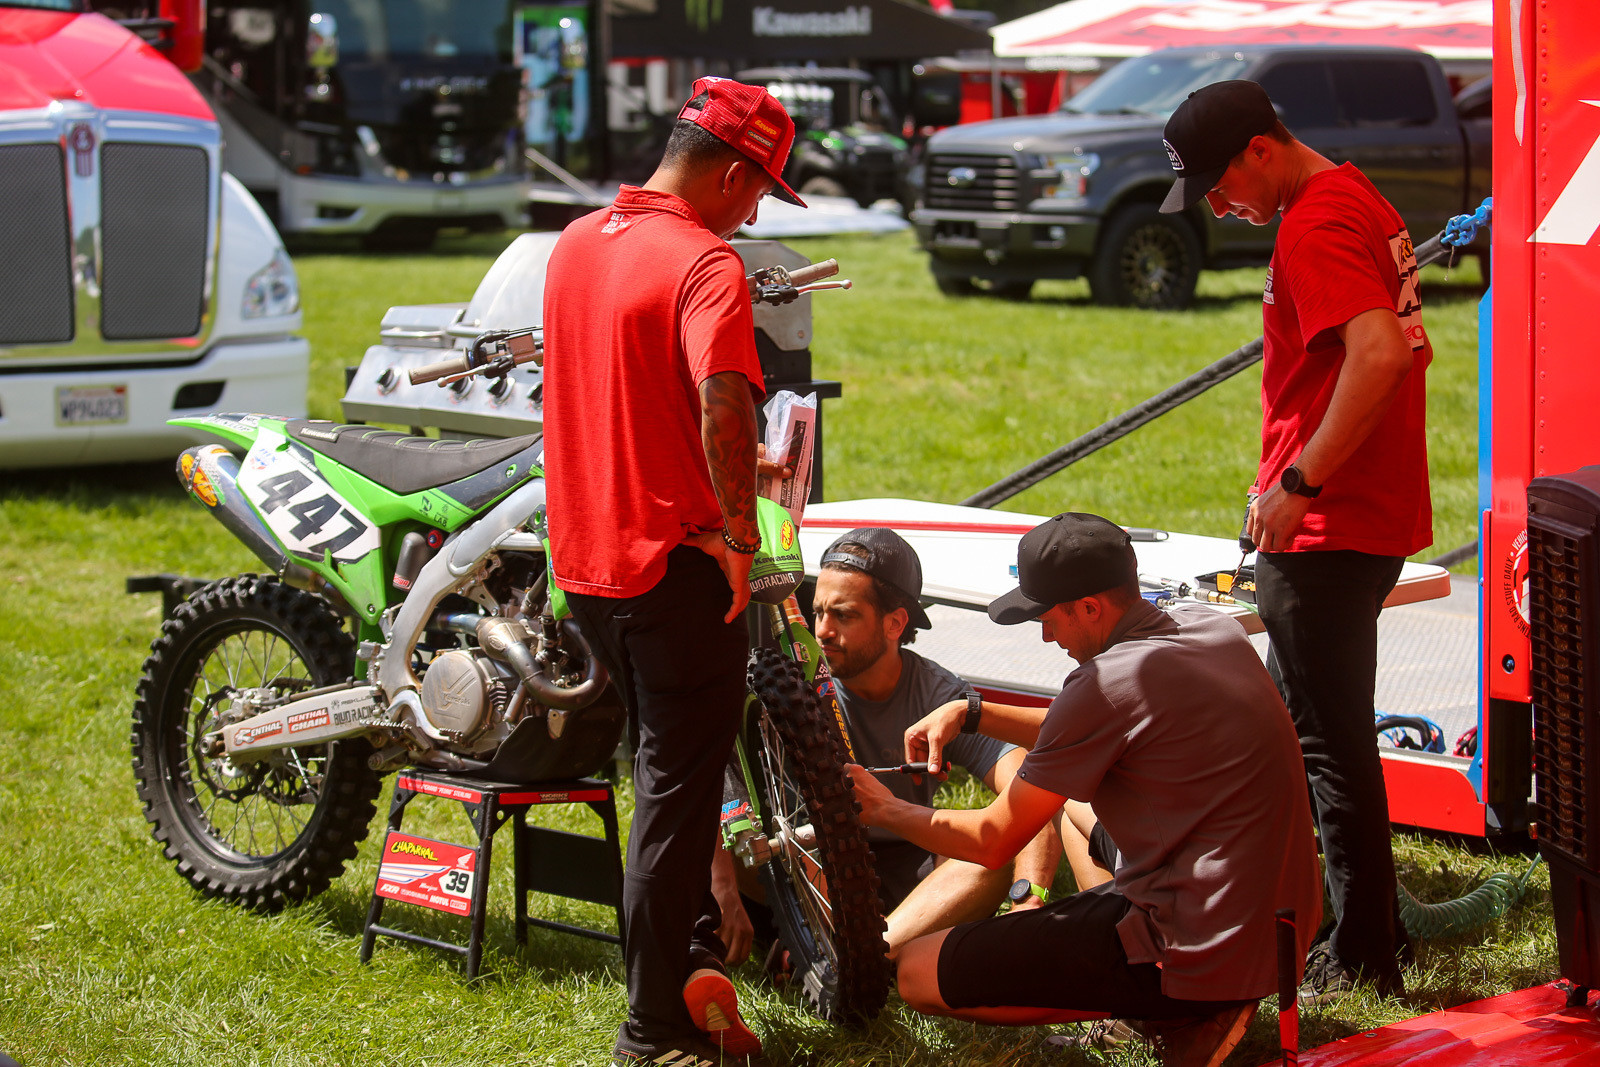 On Friday we caught the Chaparral FXR Honda squad helping out Deven Raper, who had an errant fork lug bolt.